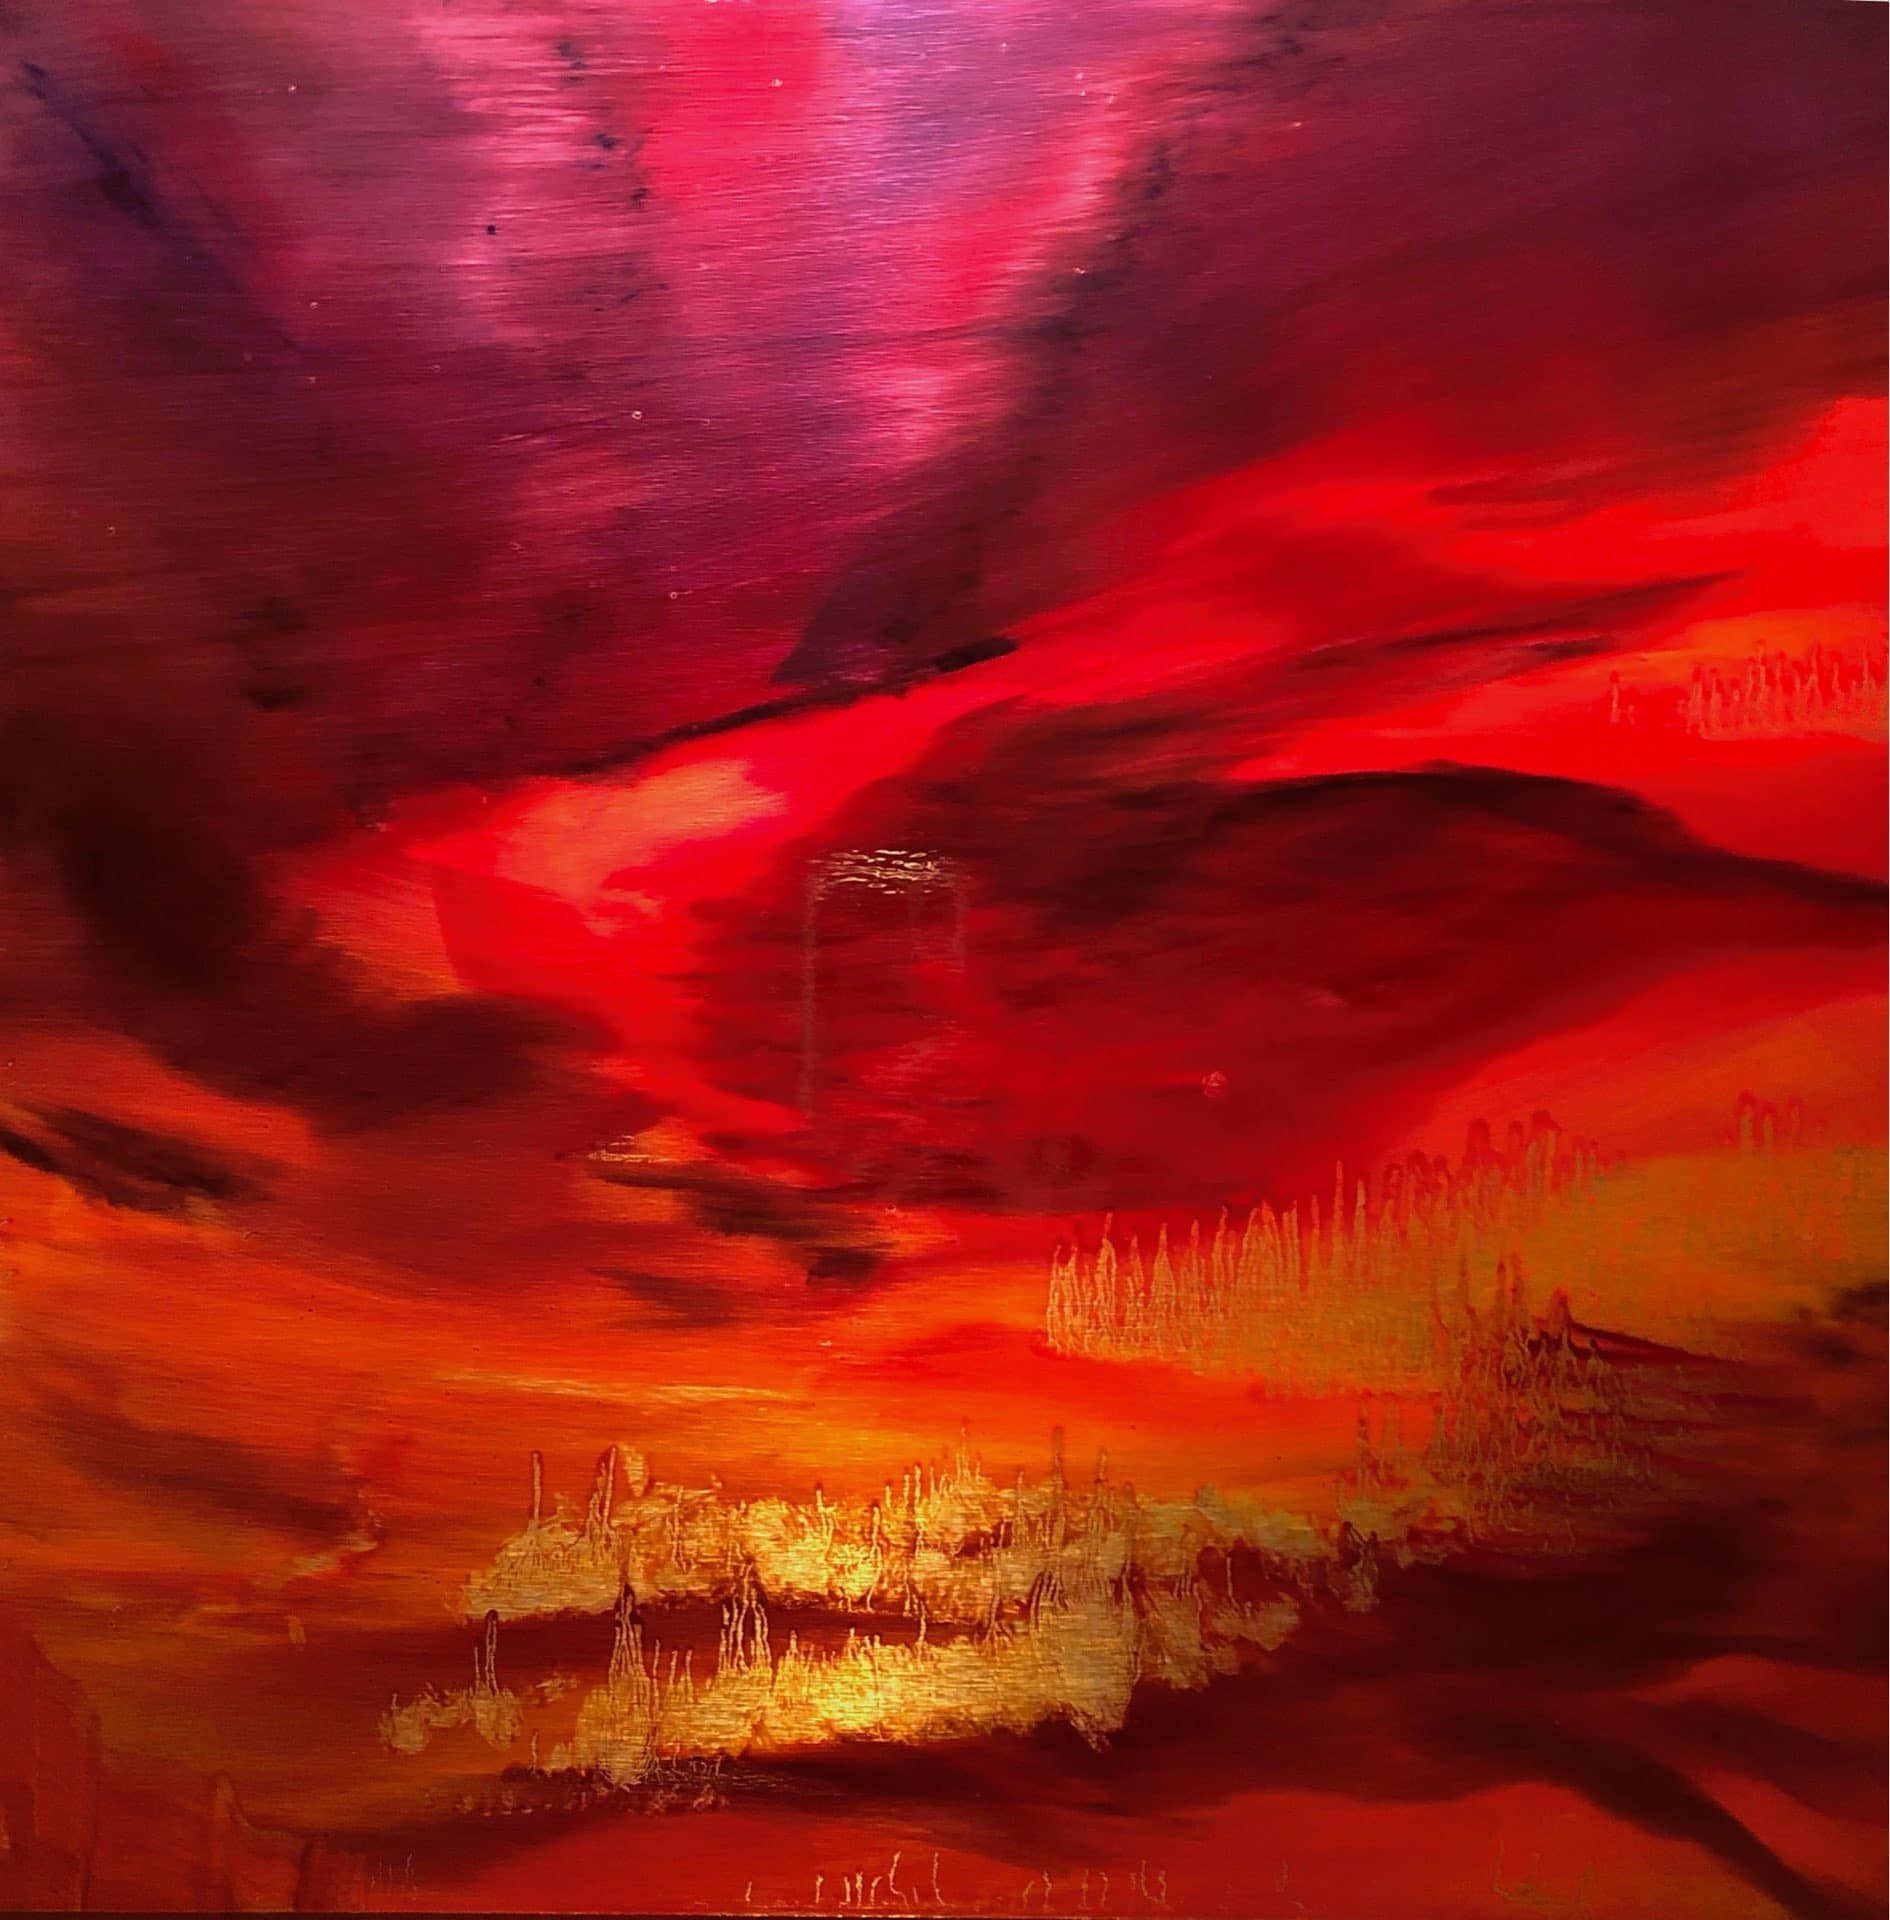 Red Sky at Night #2, Contemporary oil painting on metal of an abstract red, orange and purple sunset sky, Fine Art by Cynthia McLoughlin